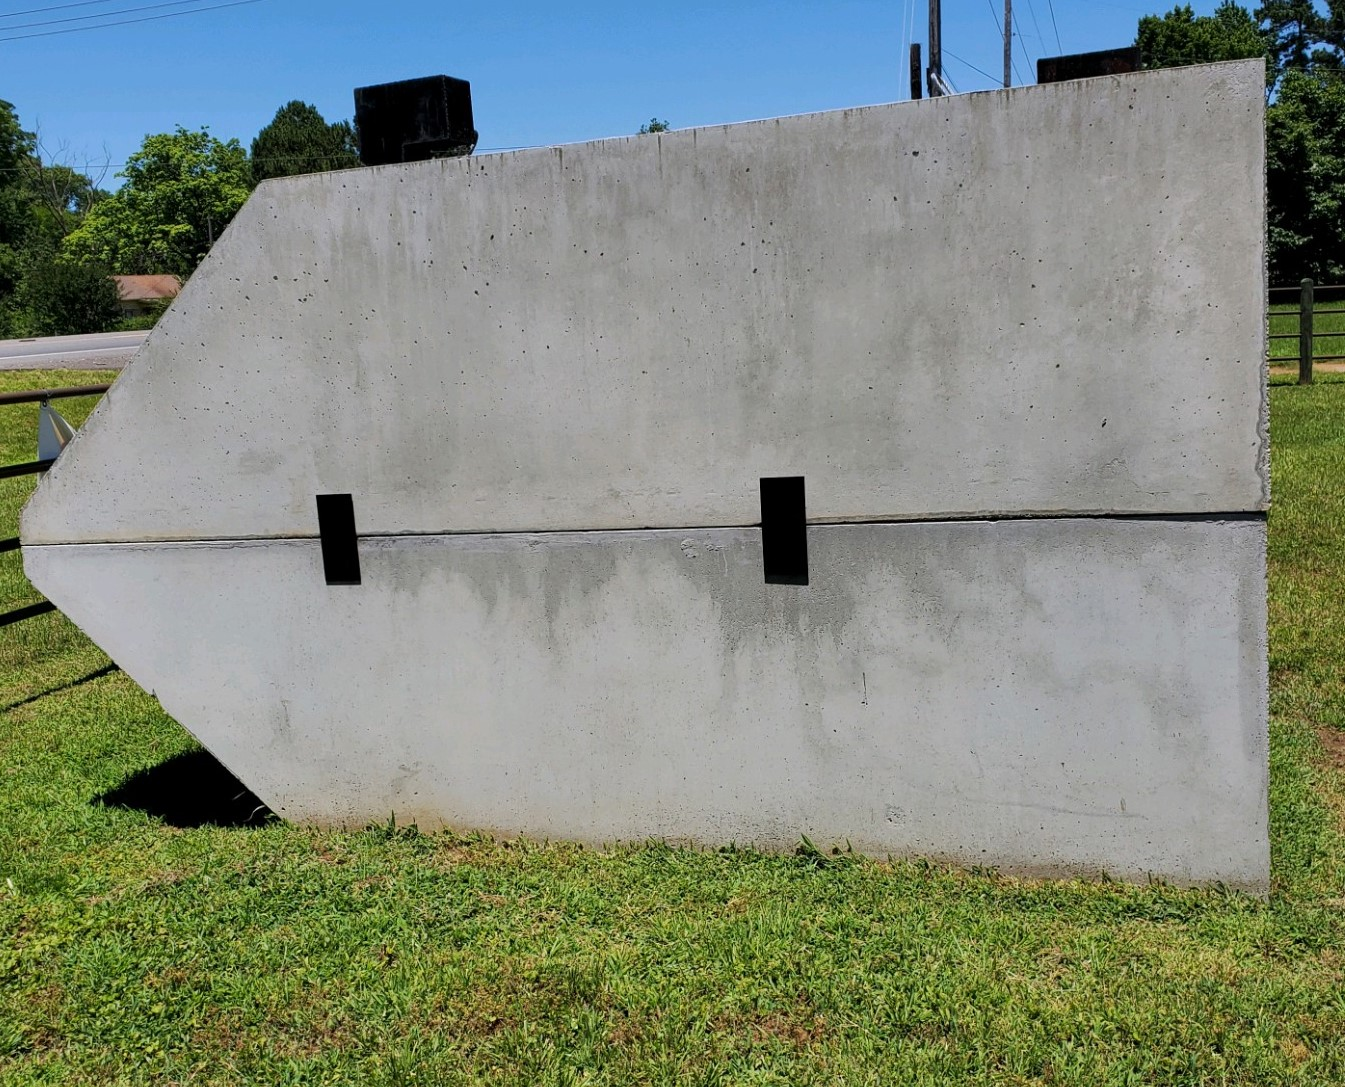 Storm Shelter side view